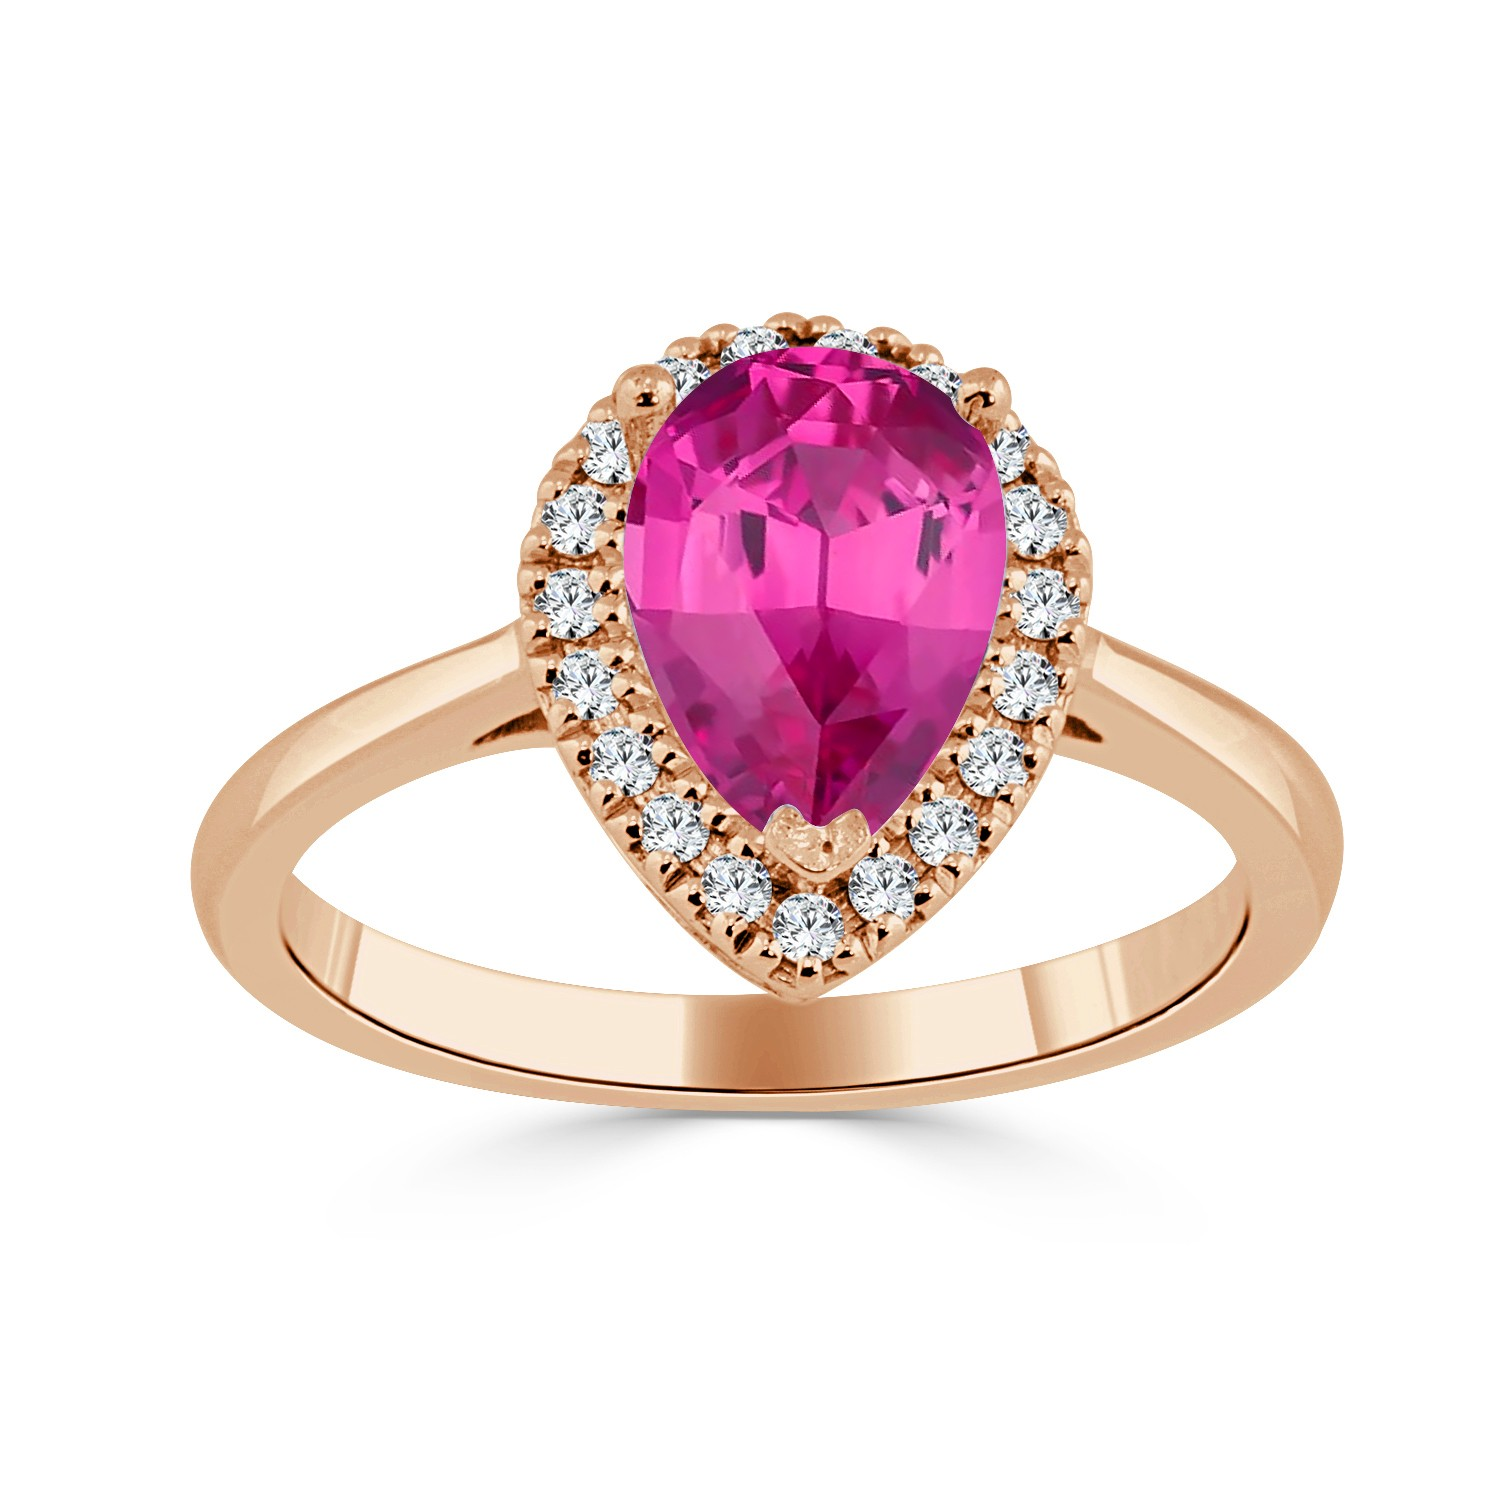 Certified 14k Rose Gold Pear Shape Pink Sapphire Halo Ring 1 1/6 ct. tw. (Pink, AAA)